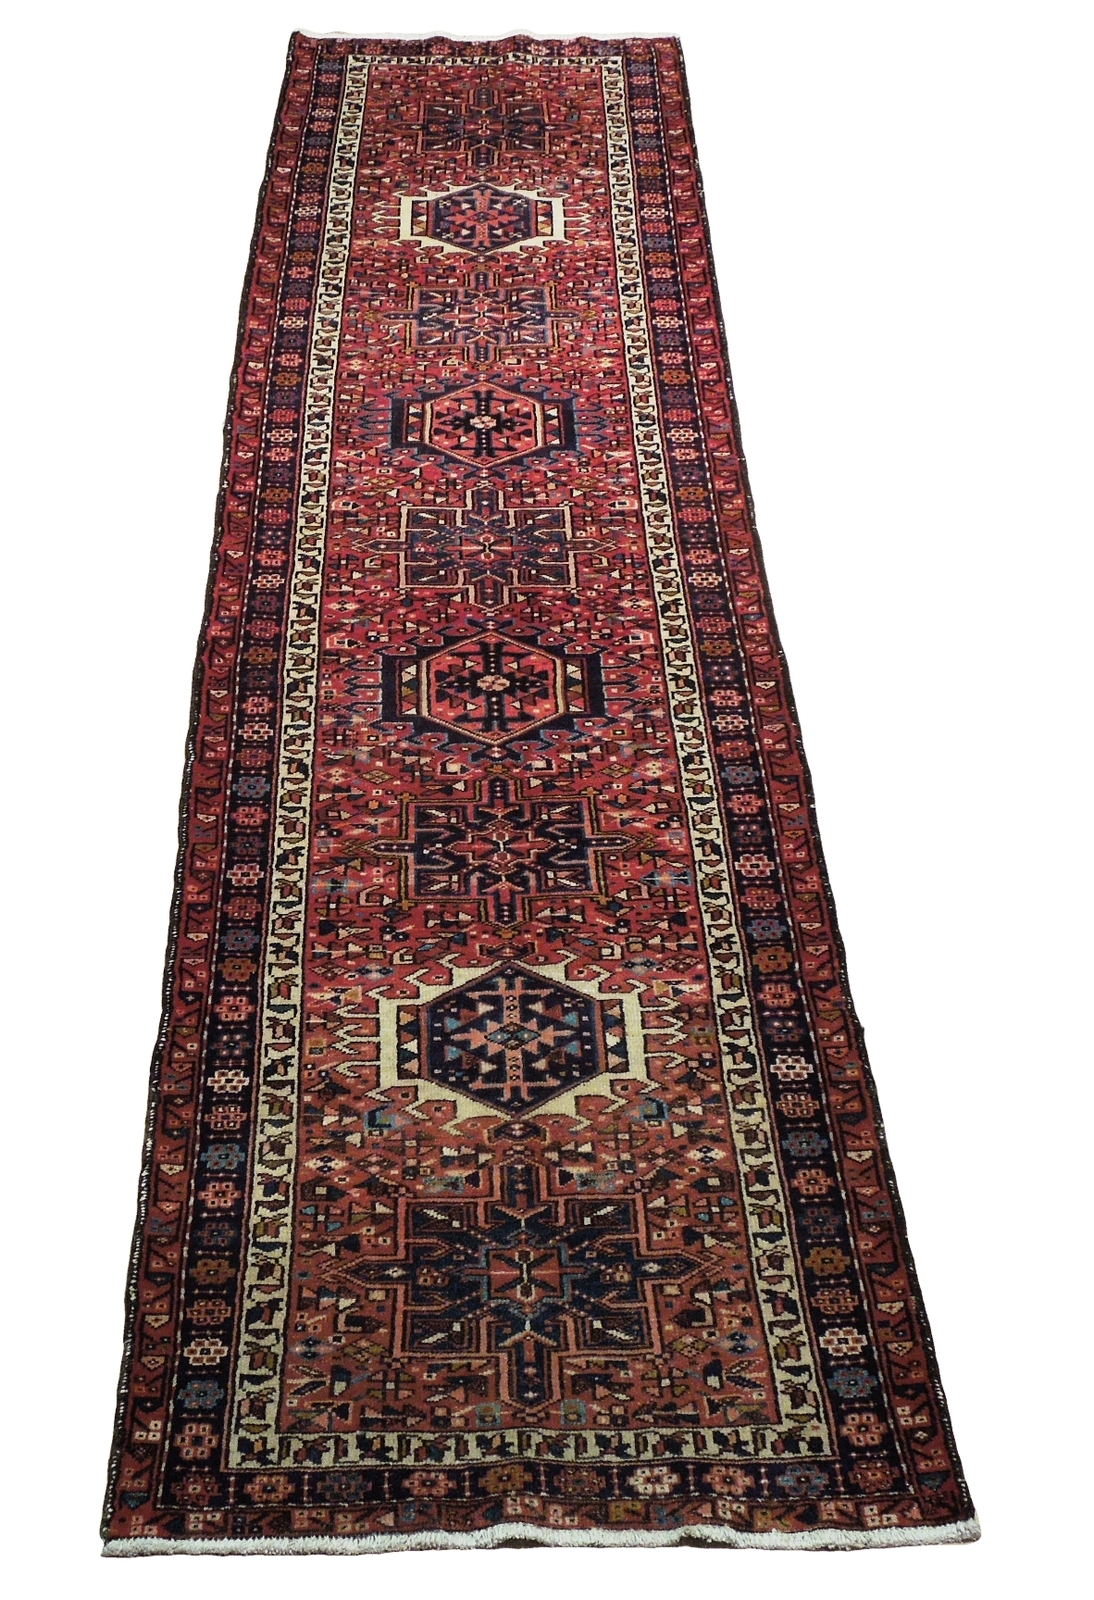 3' x 13' Rust Brick Red Semi-Antique Runner Red Karaja Persian Handmade Rug